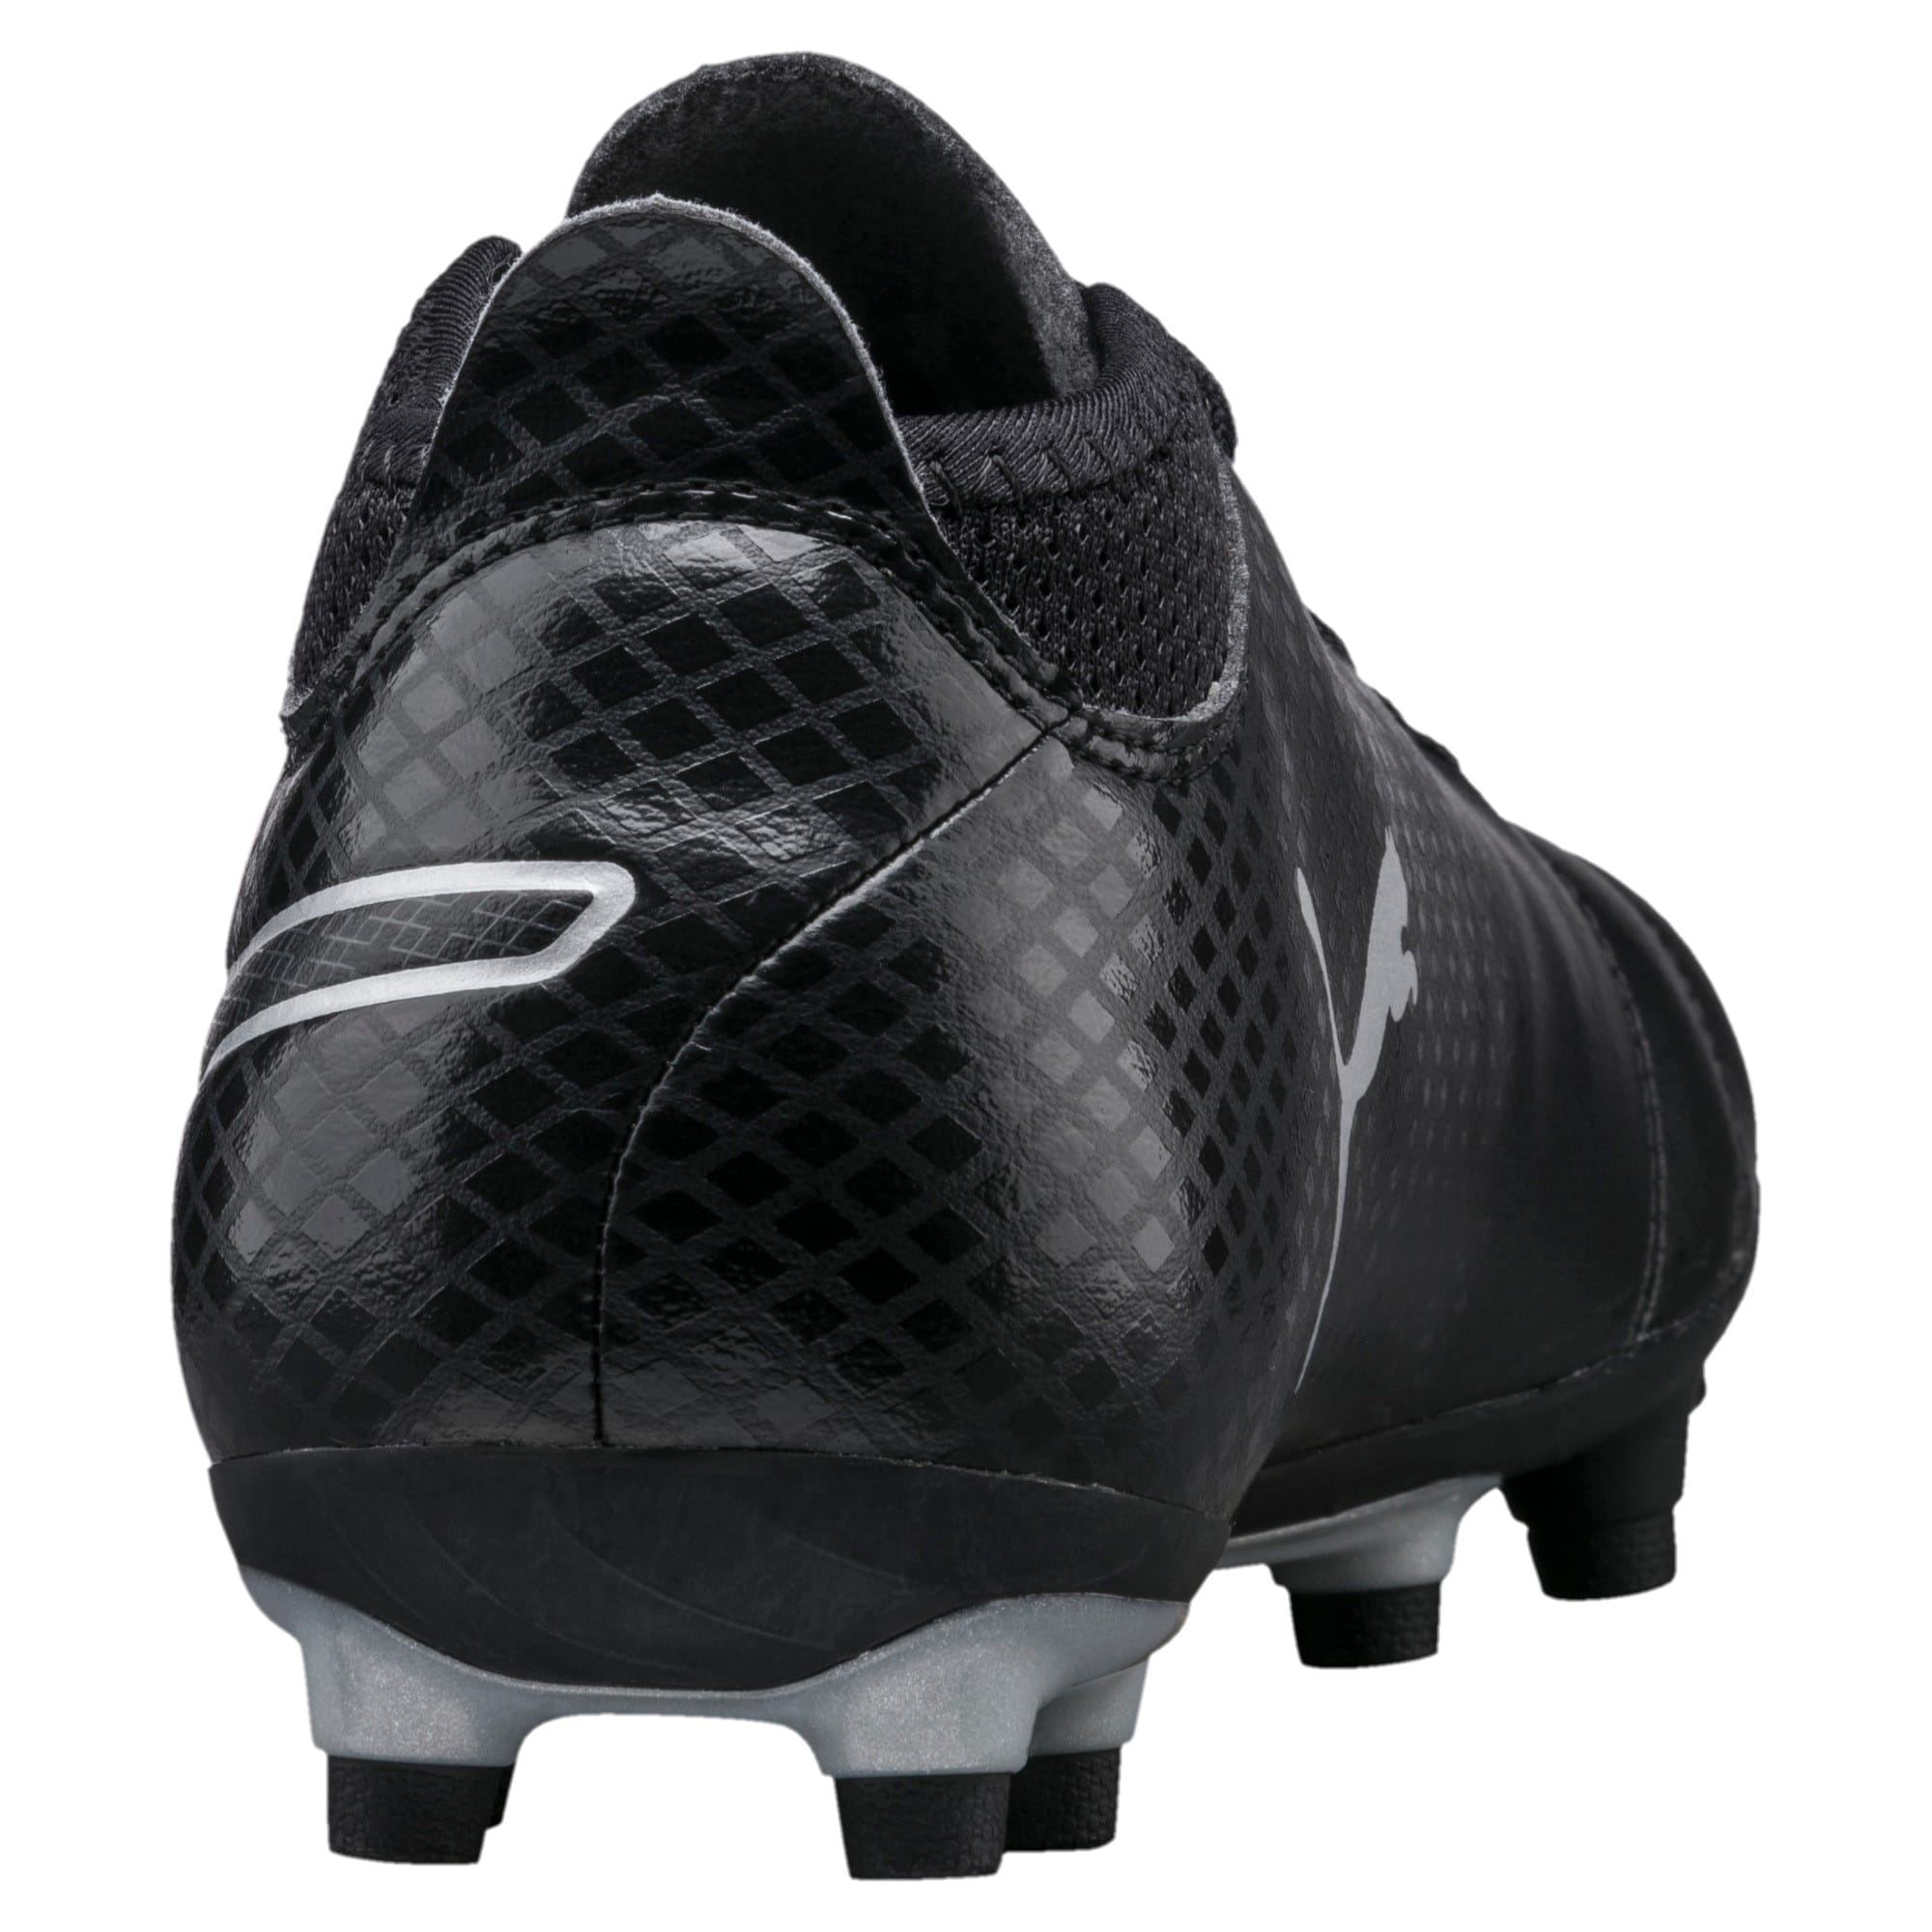 Thumbnail 3 of ONE 17.4 FG Men's Football Boots, Black-Black-Silver, medium-IND